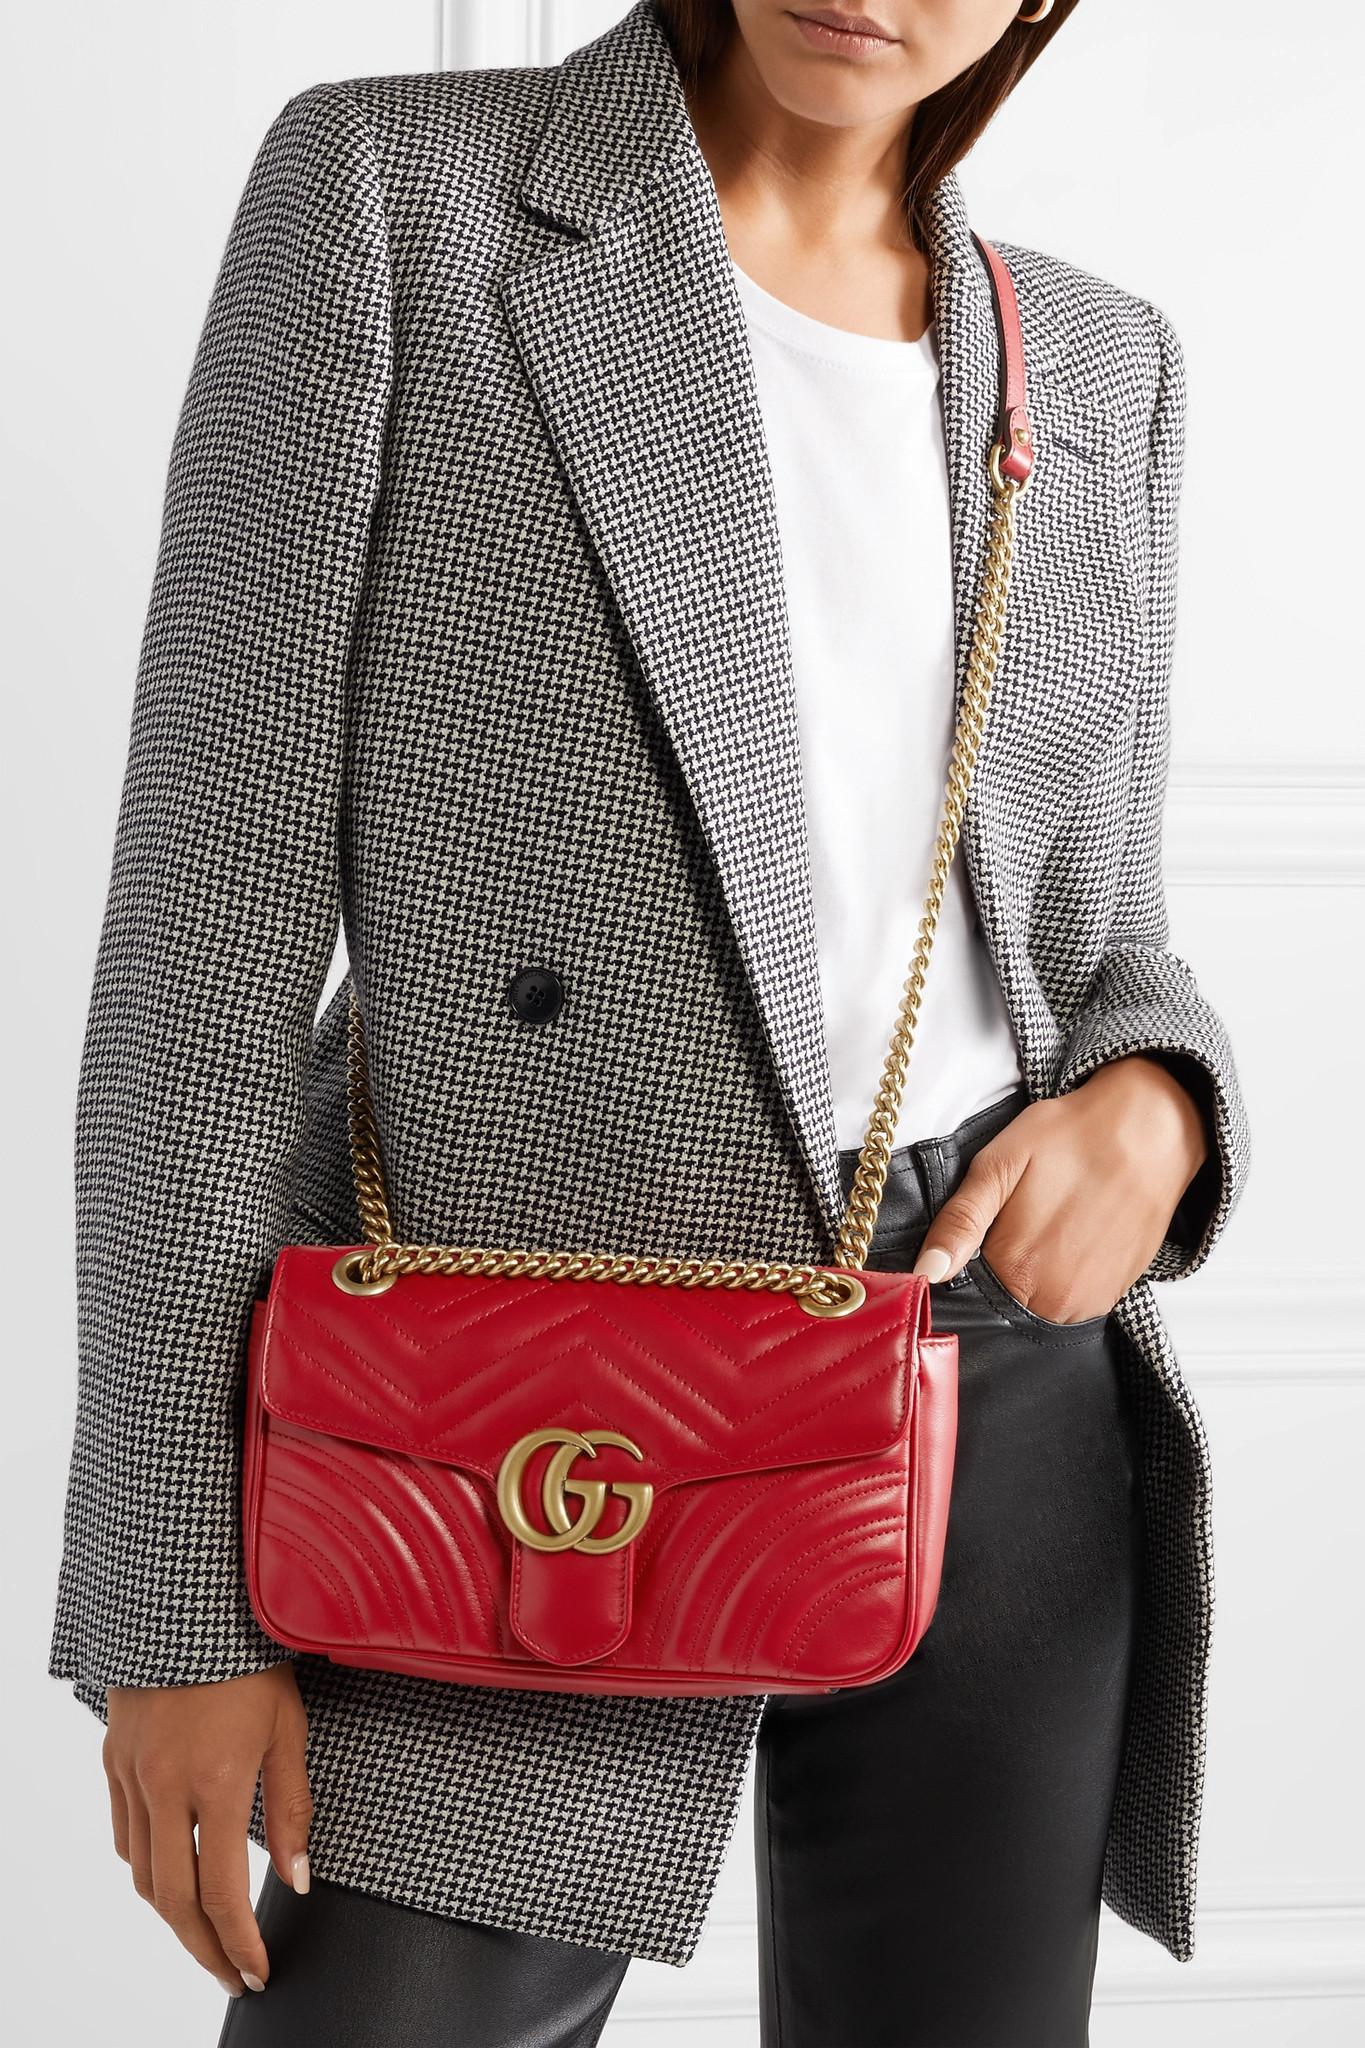 1eab4ae6416 Gucci - Red Small Gg Marmont 2.0 Matelassé Leather Shoulder Bag - Lyst.  View fullscreen